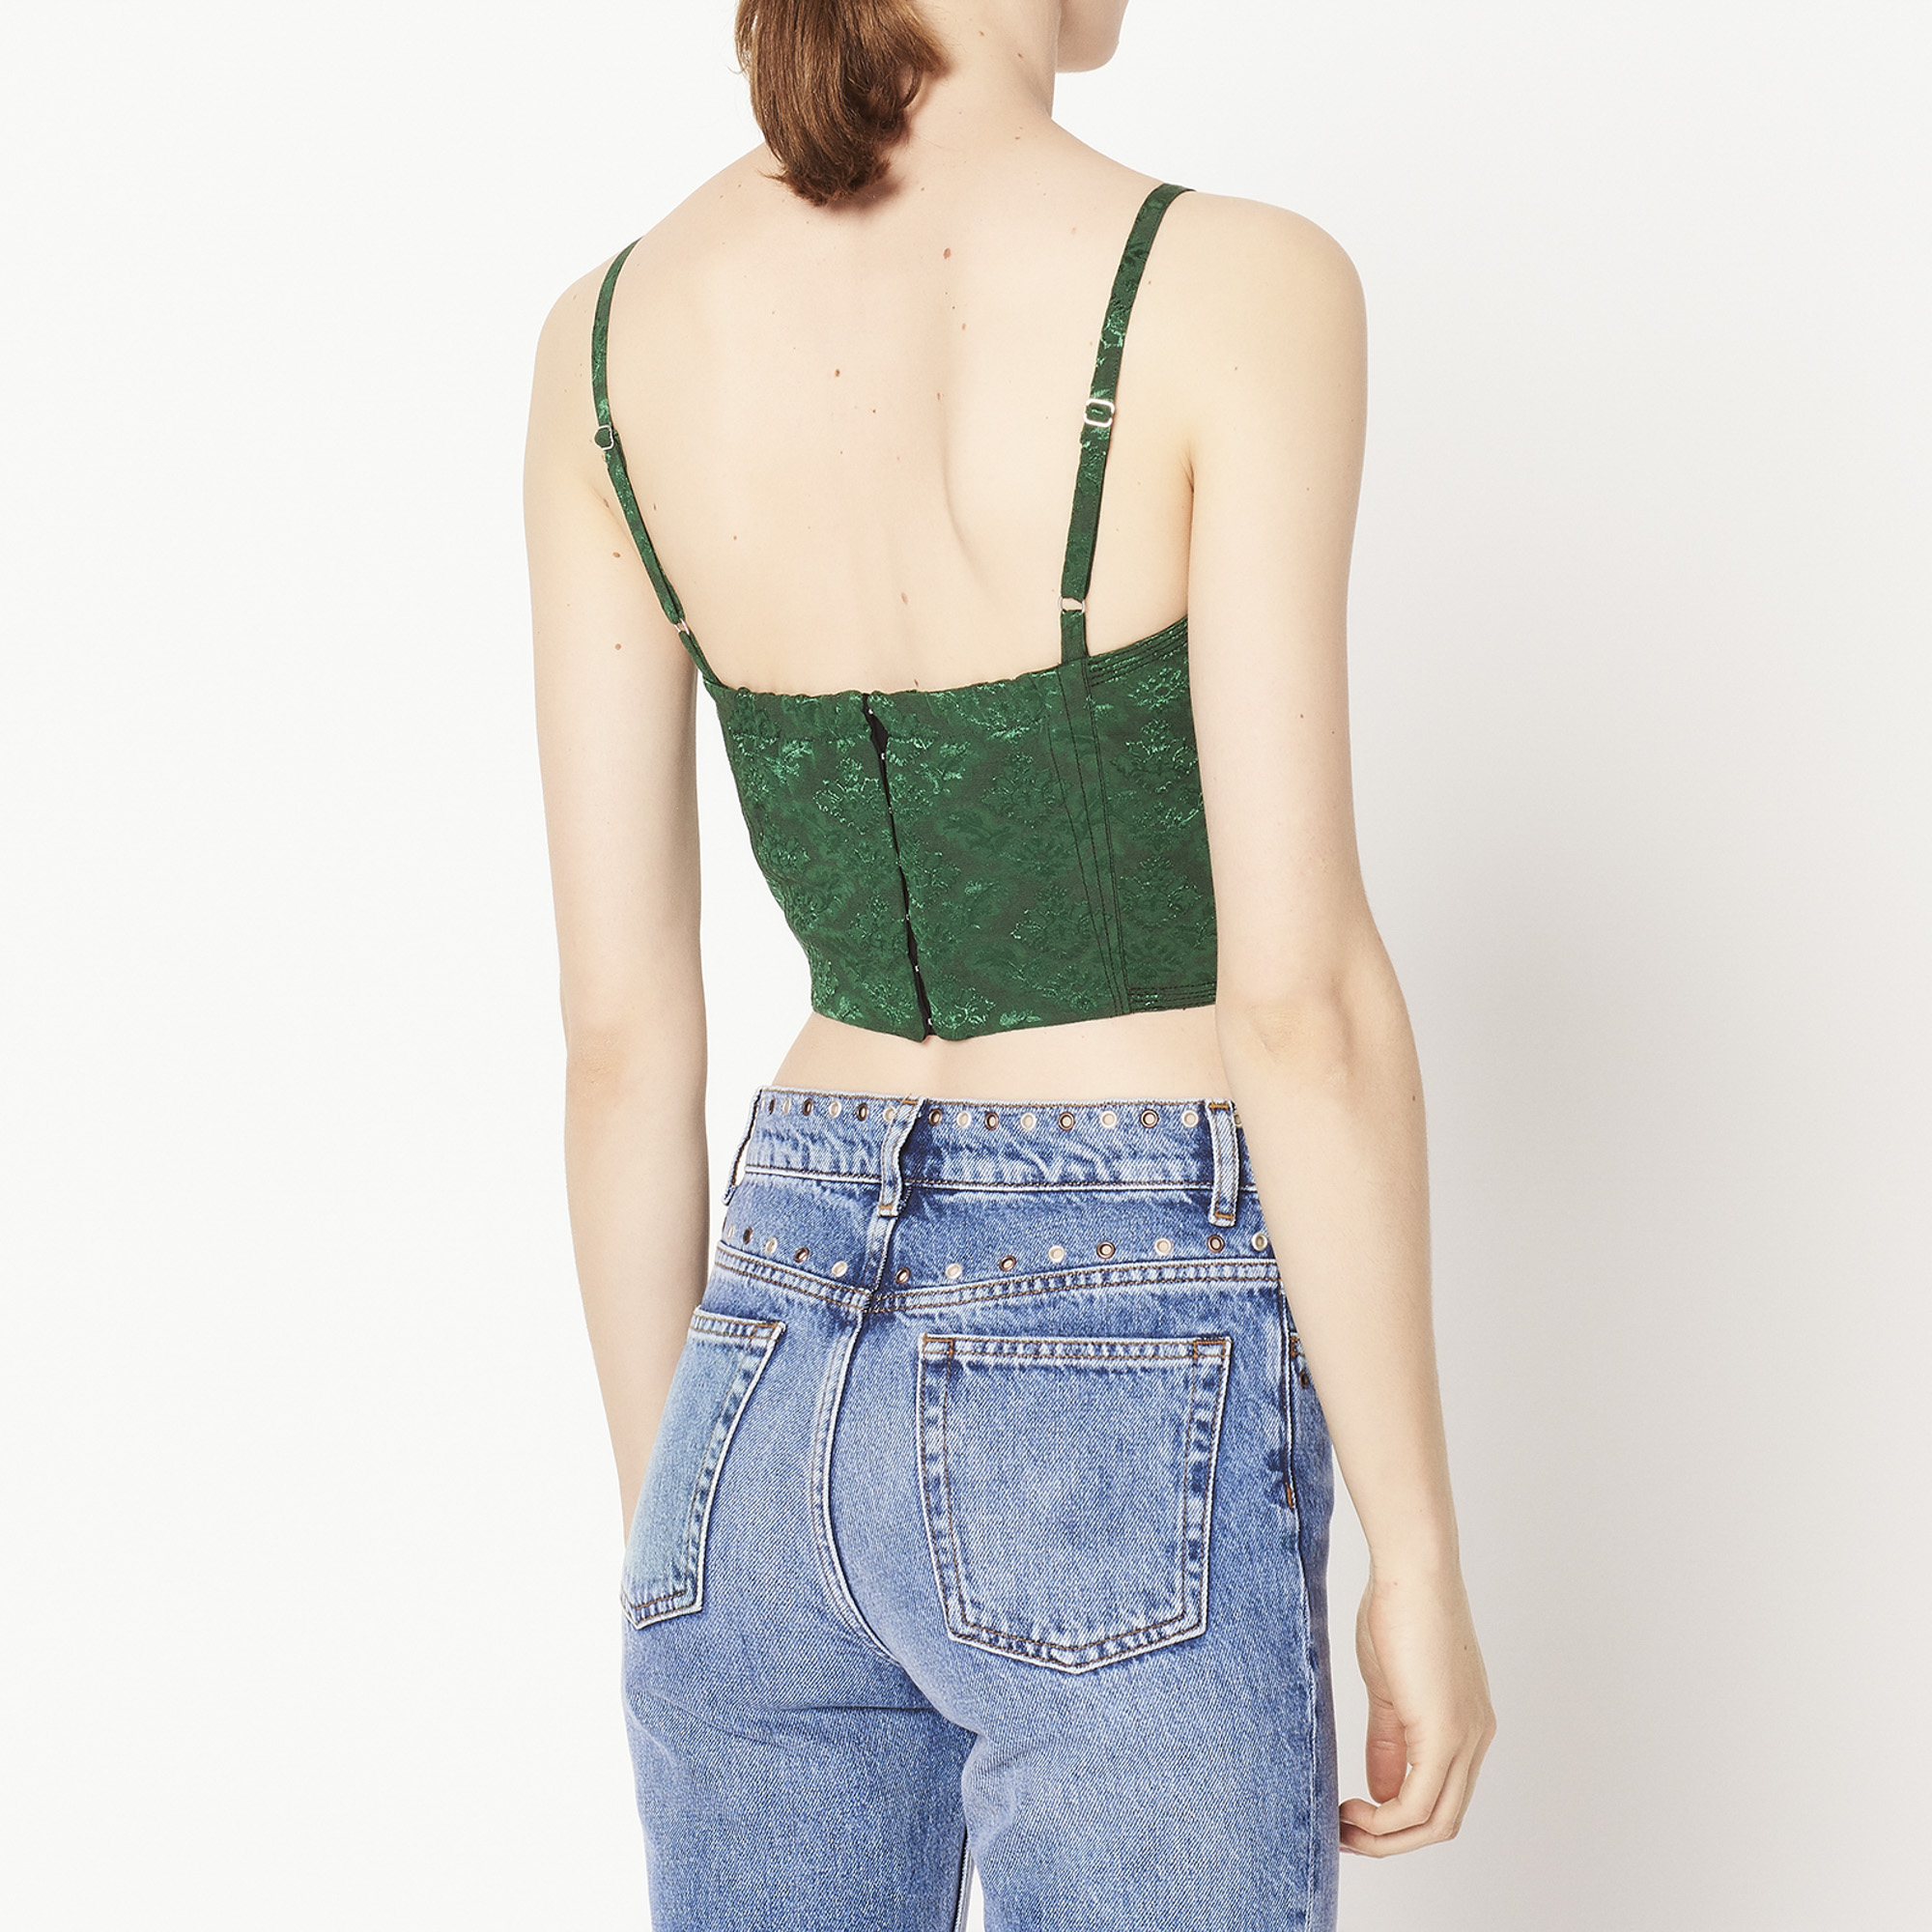 3e8879e25c2814 ... Jacquard crop top with thin straps   Tops   Shirts color Chlorophyll ...